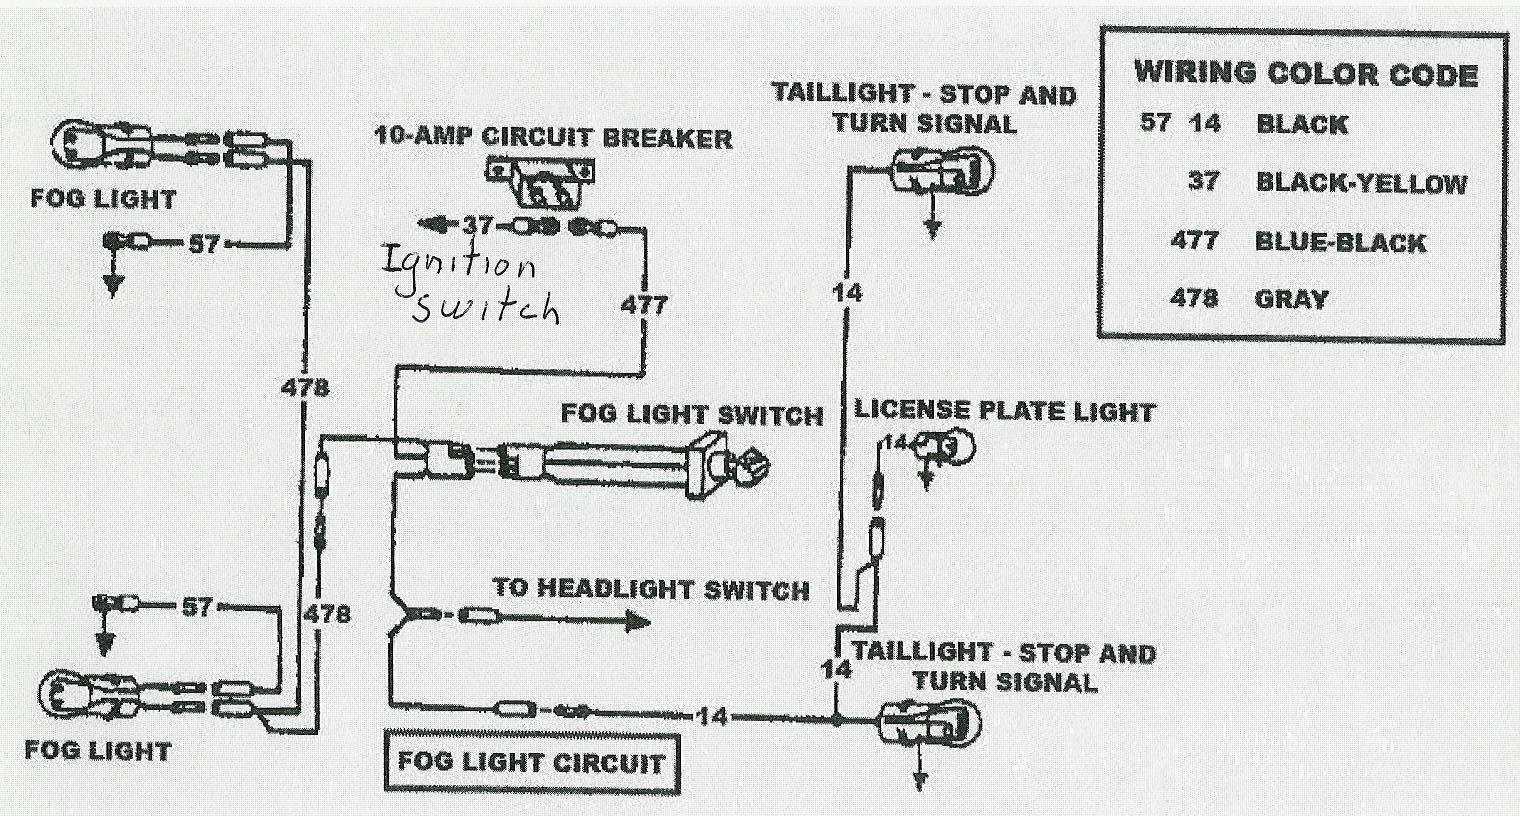 wiring diagram 2010 oem service manual volvo wiring 2010 supplement70 08 xc 70 09 s80 07